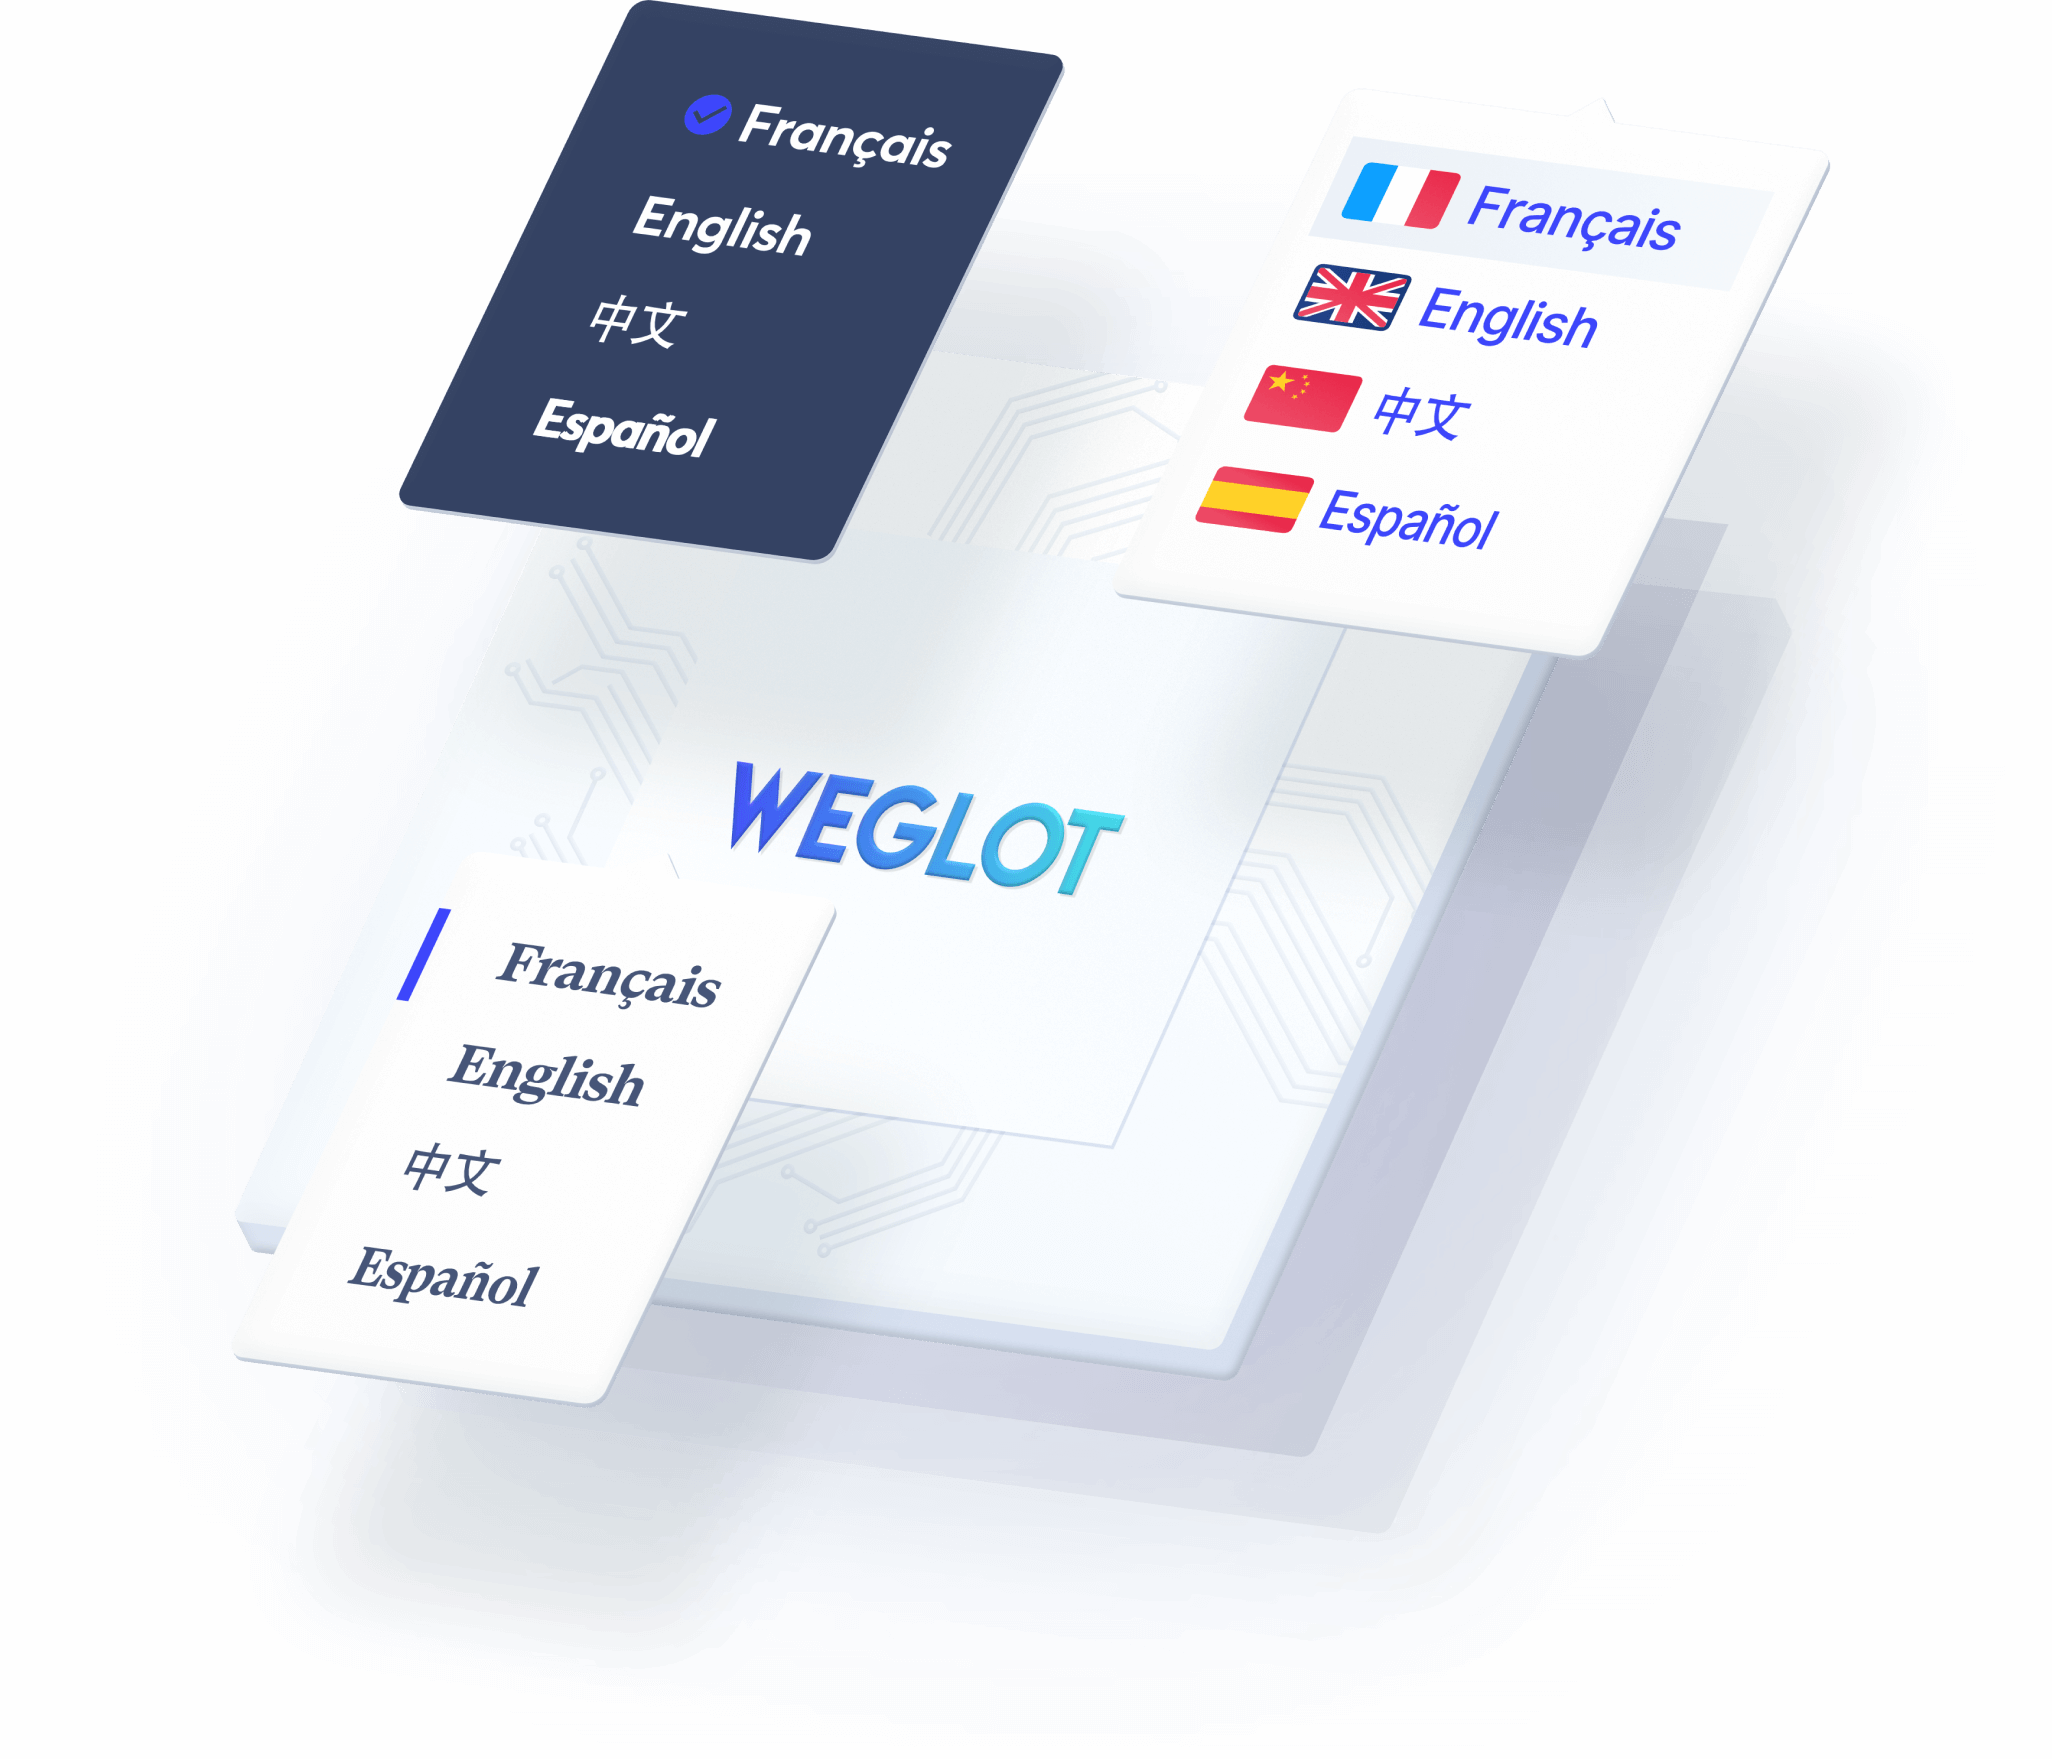 language switcher to switch between different languages